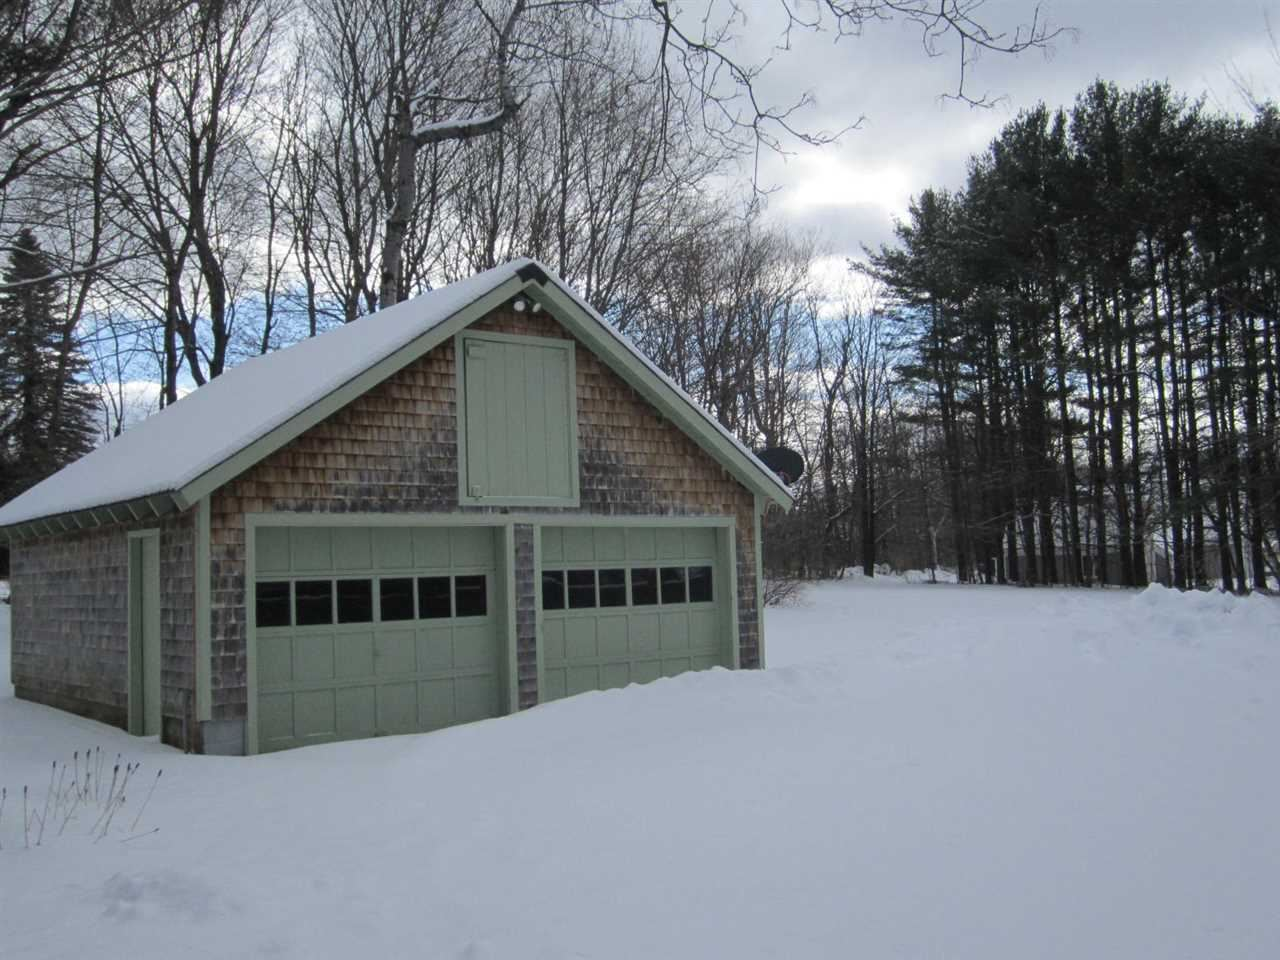 371 Little Sunapee Road New London Nh 03257 Mls 4779578 Listing Information North Andover Real Estate Real Living Real Estate